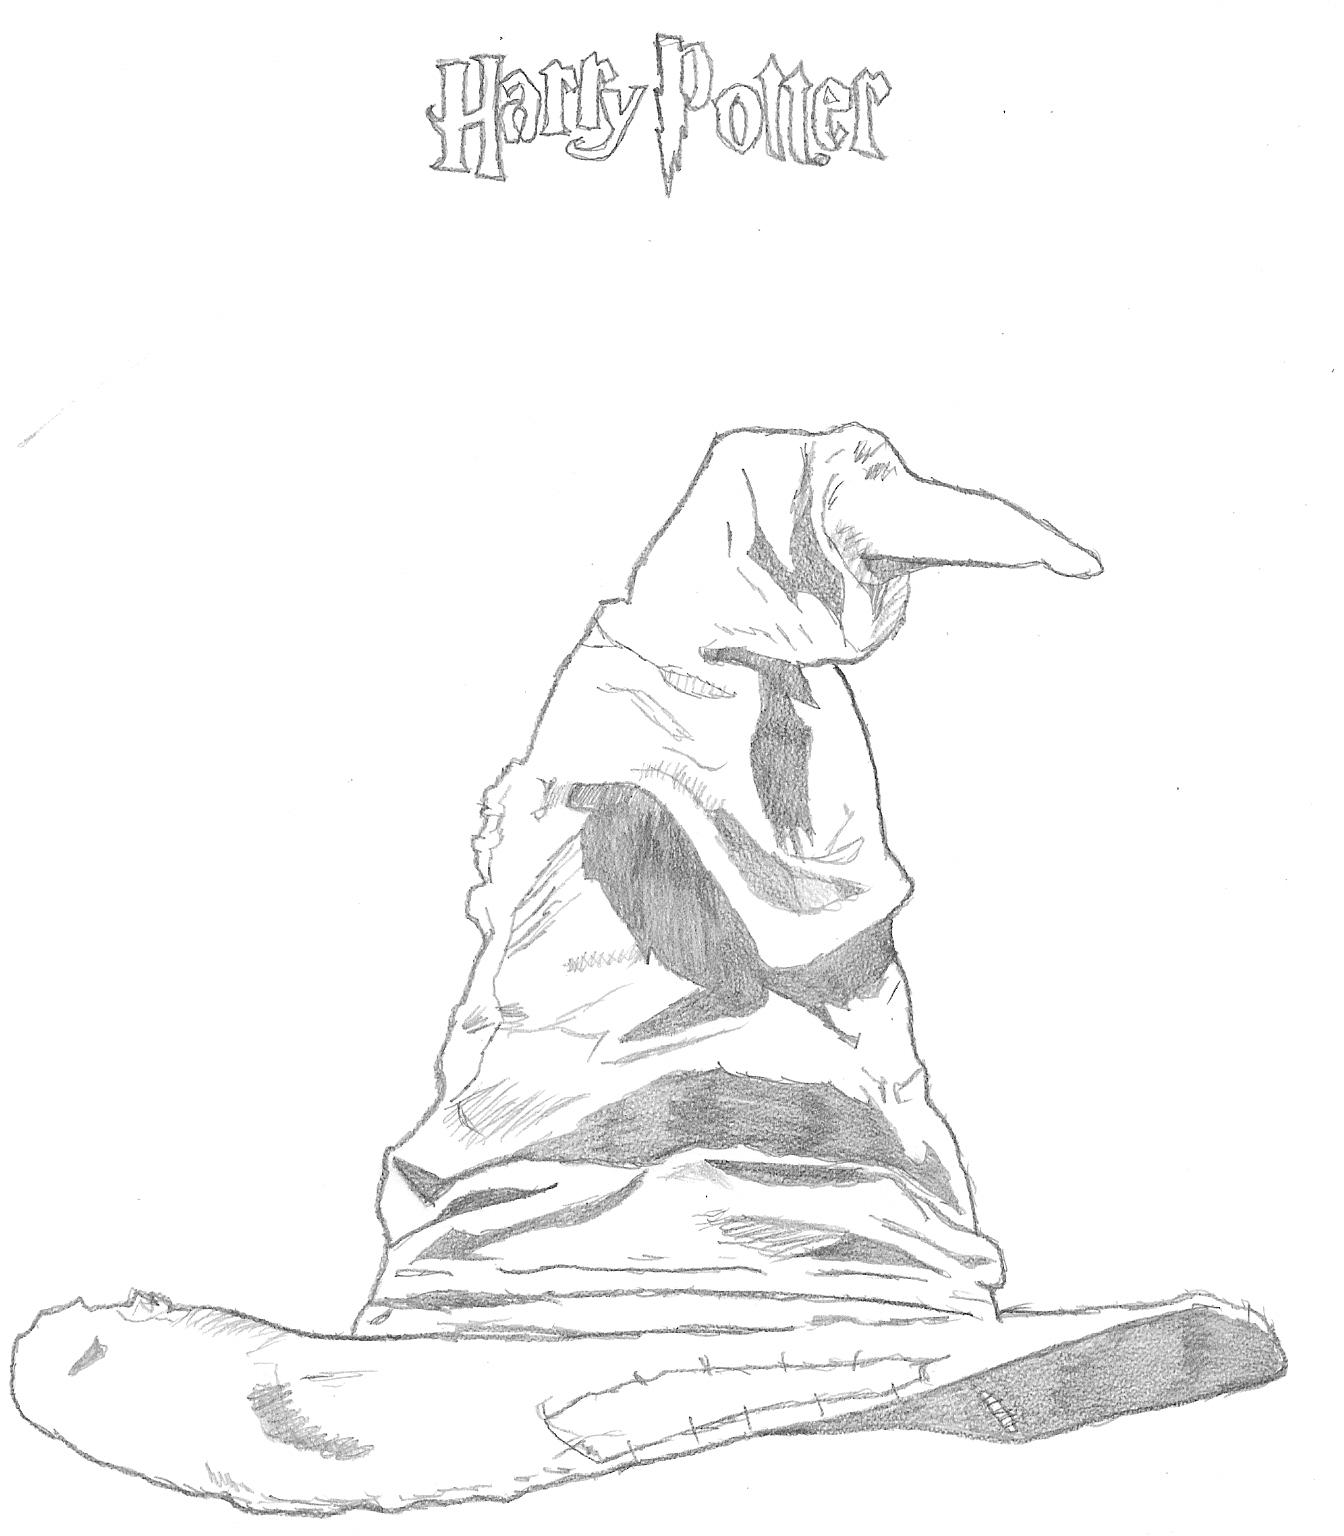 Harry Potter Sorting Hat Sketch Coloring Page